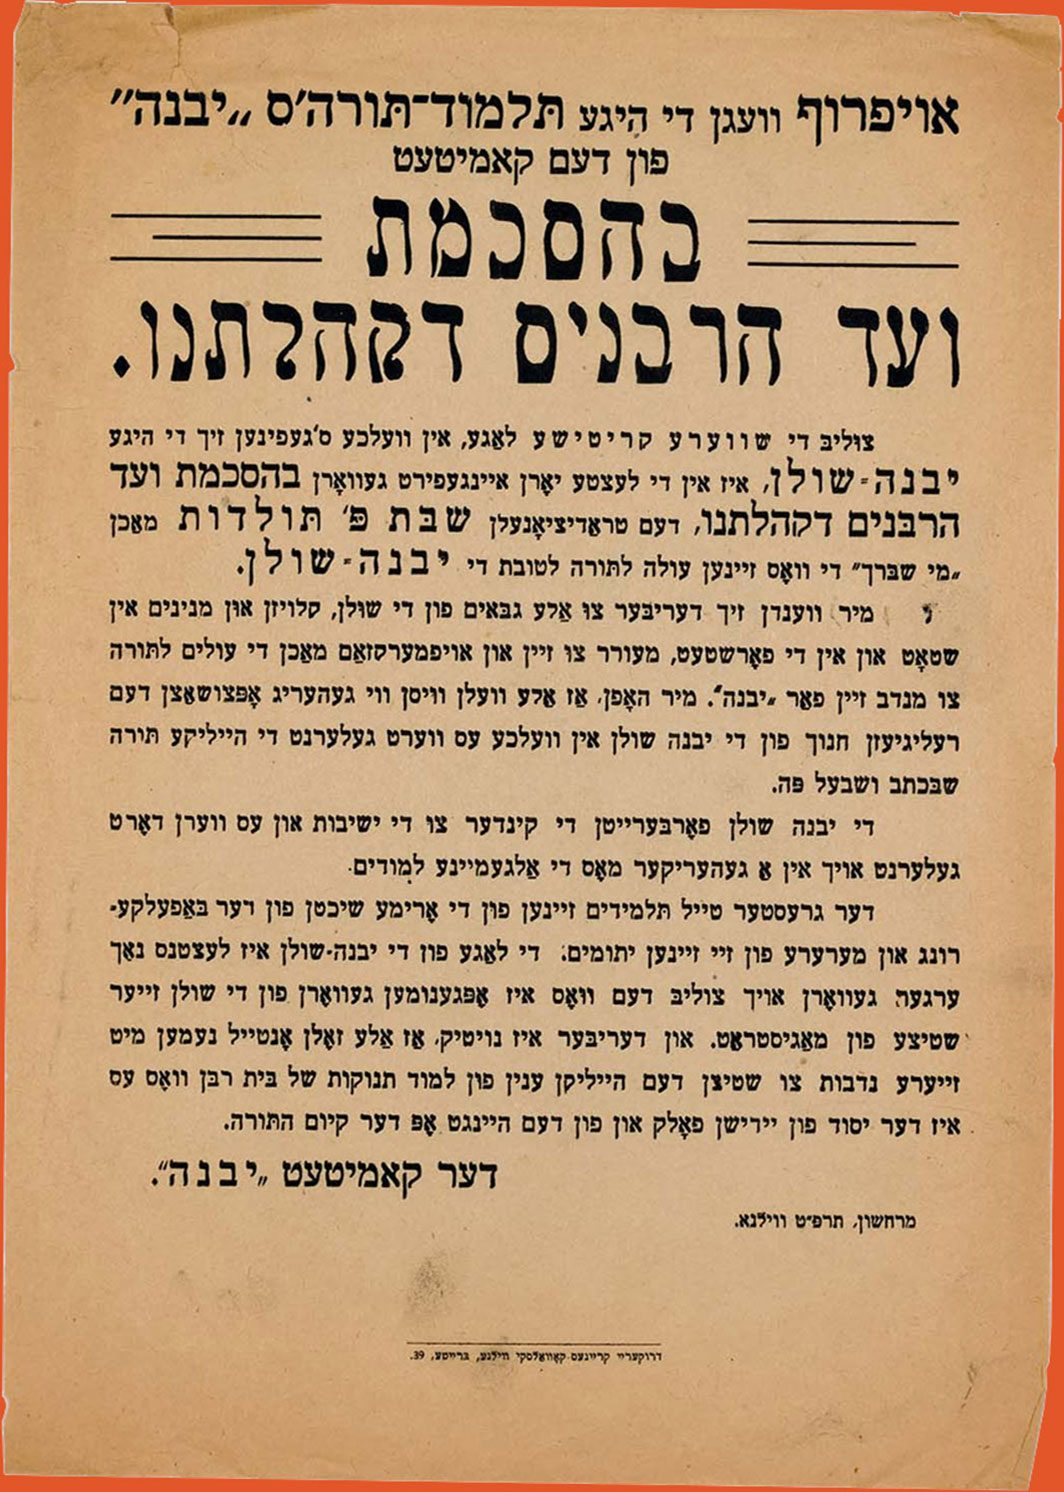 Flier in Yiddish asking for support for a religious school